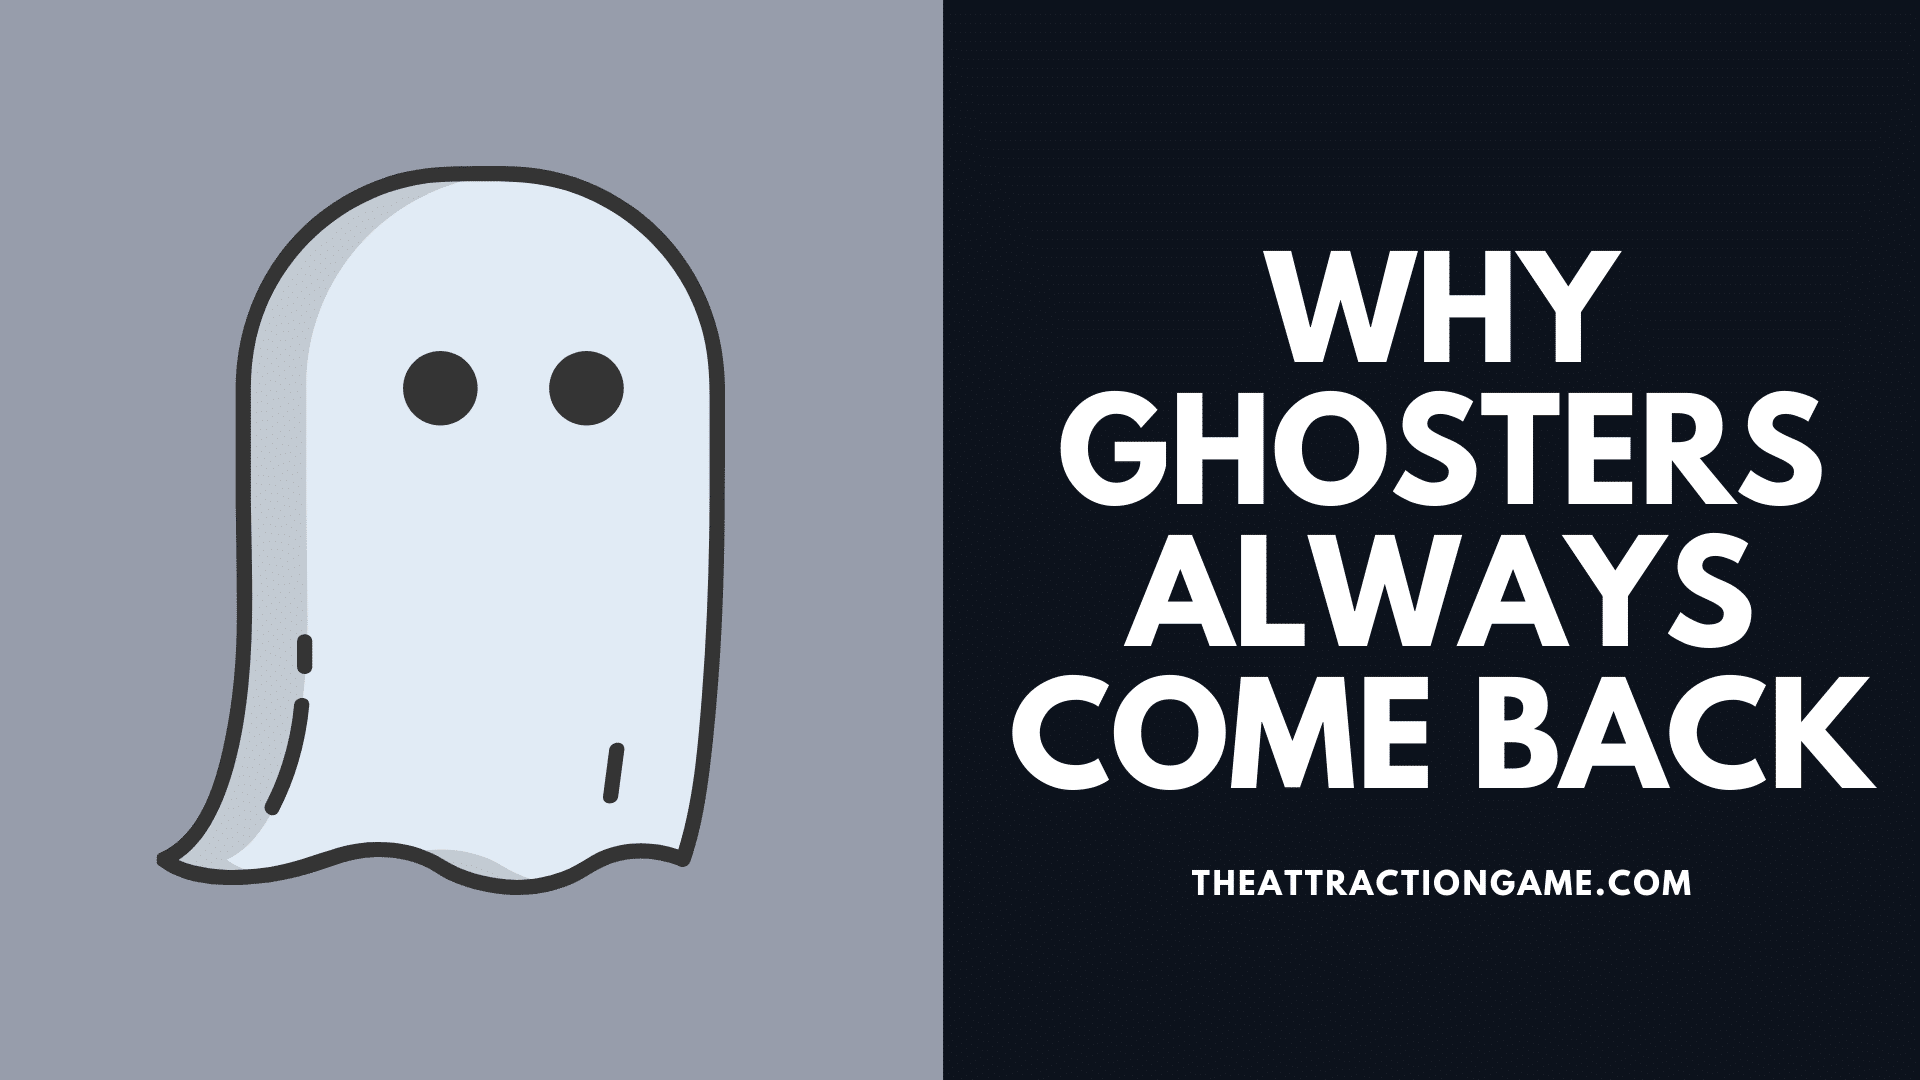 ghosters, ghosting, why ghosters come back, reasons why ghosters come back, why ghosters always come back, do ghosters come back